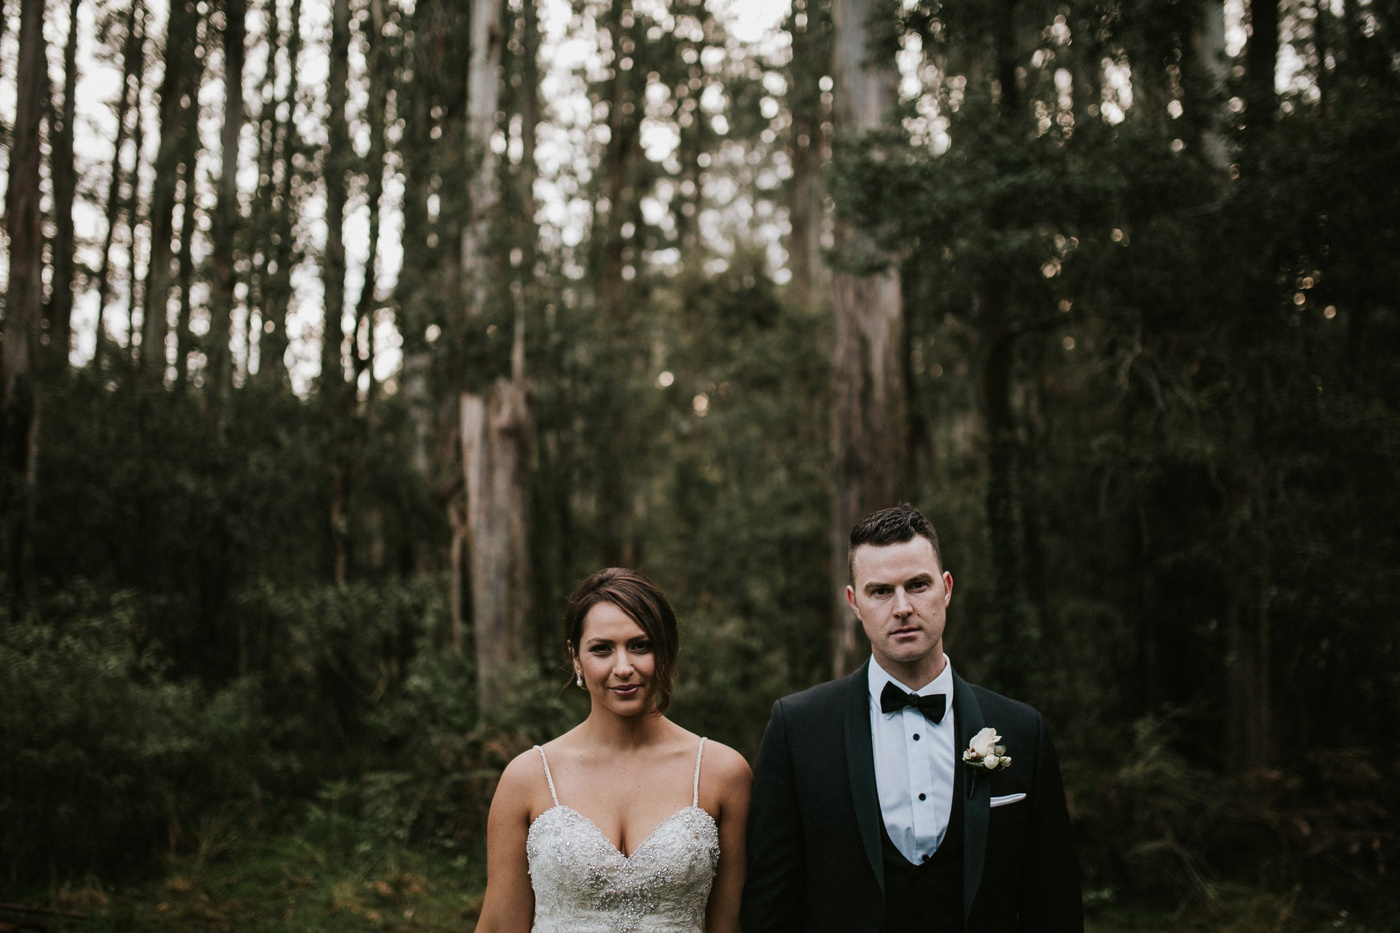 wesleybianca_dandenongs-sherbrooke-poets-lane-wedding_melbourne-quirky-fun-candid-wedding-photography_52